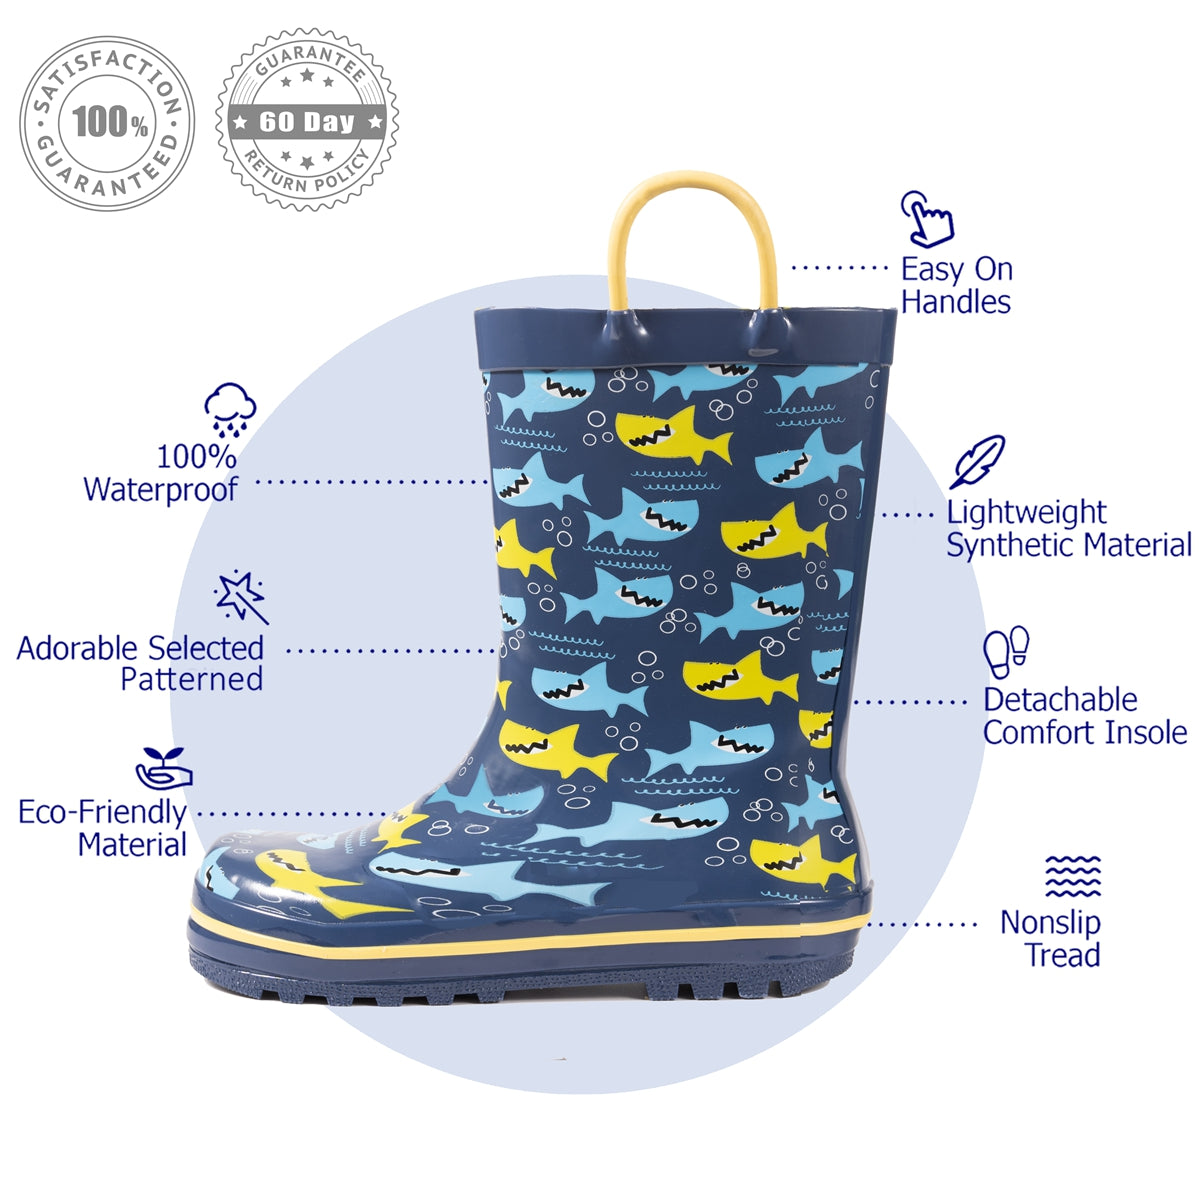 Outee Toddler Kids Boys Rubber Rain Boots Cute Printed with Easy-On Handles - Navy Shark